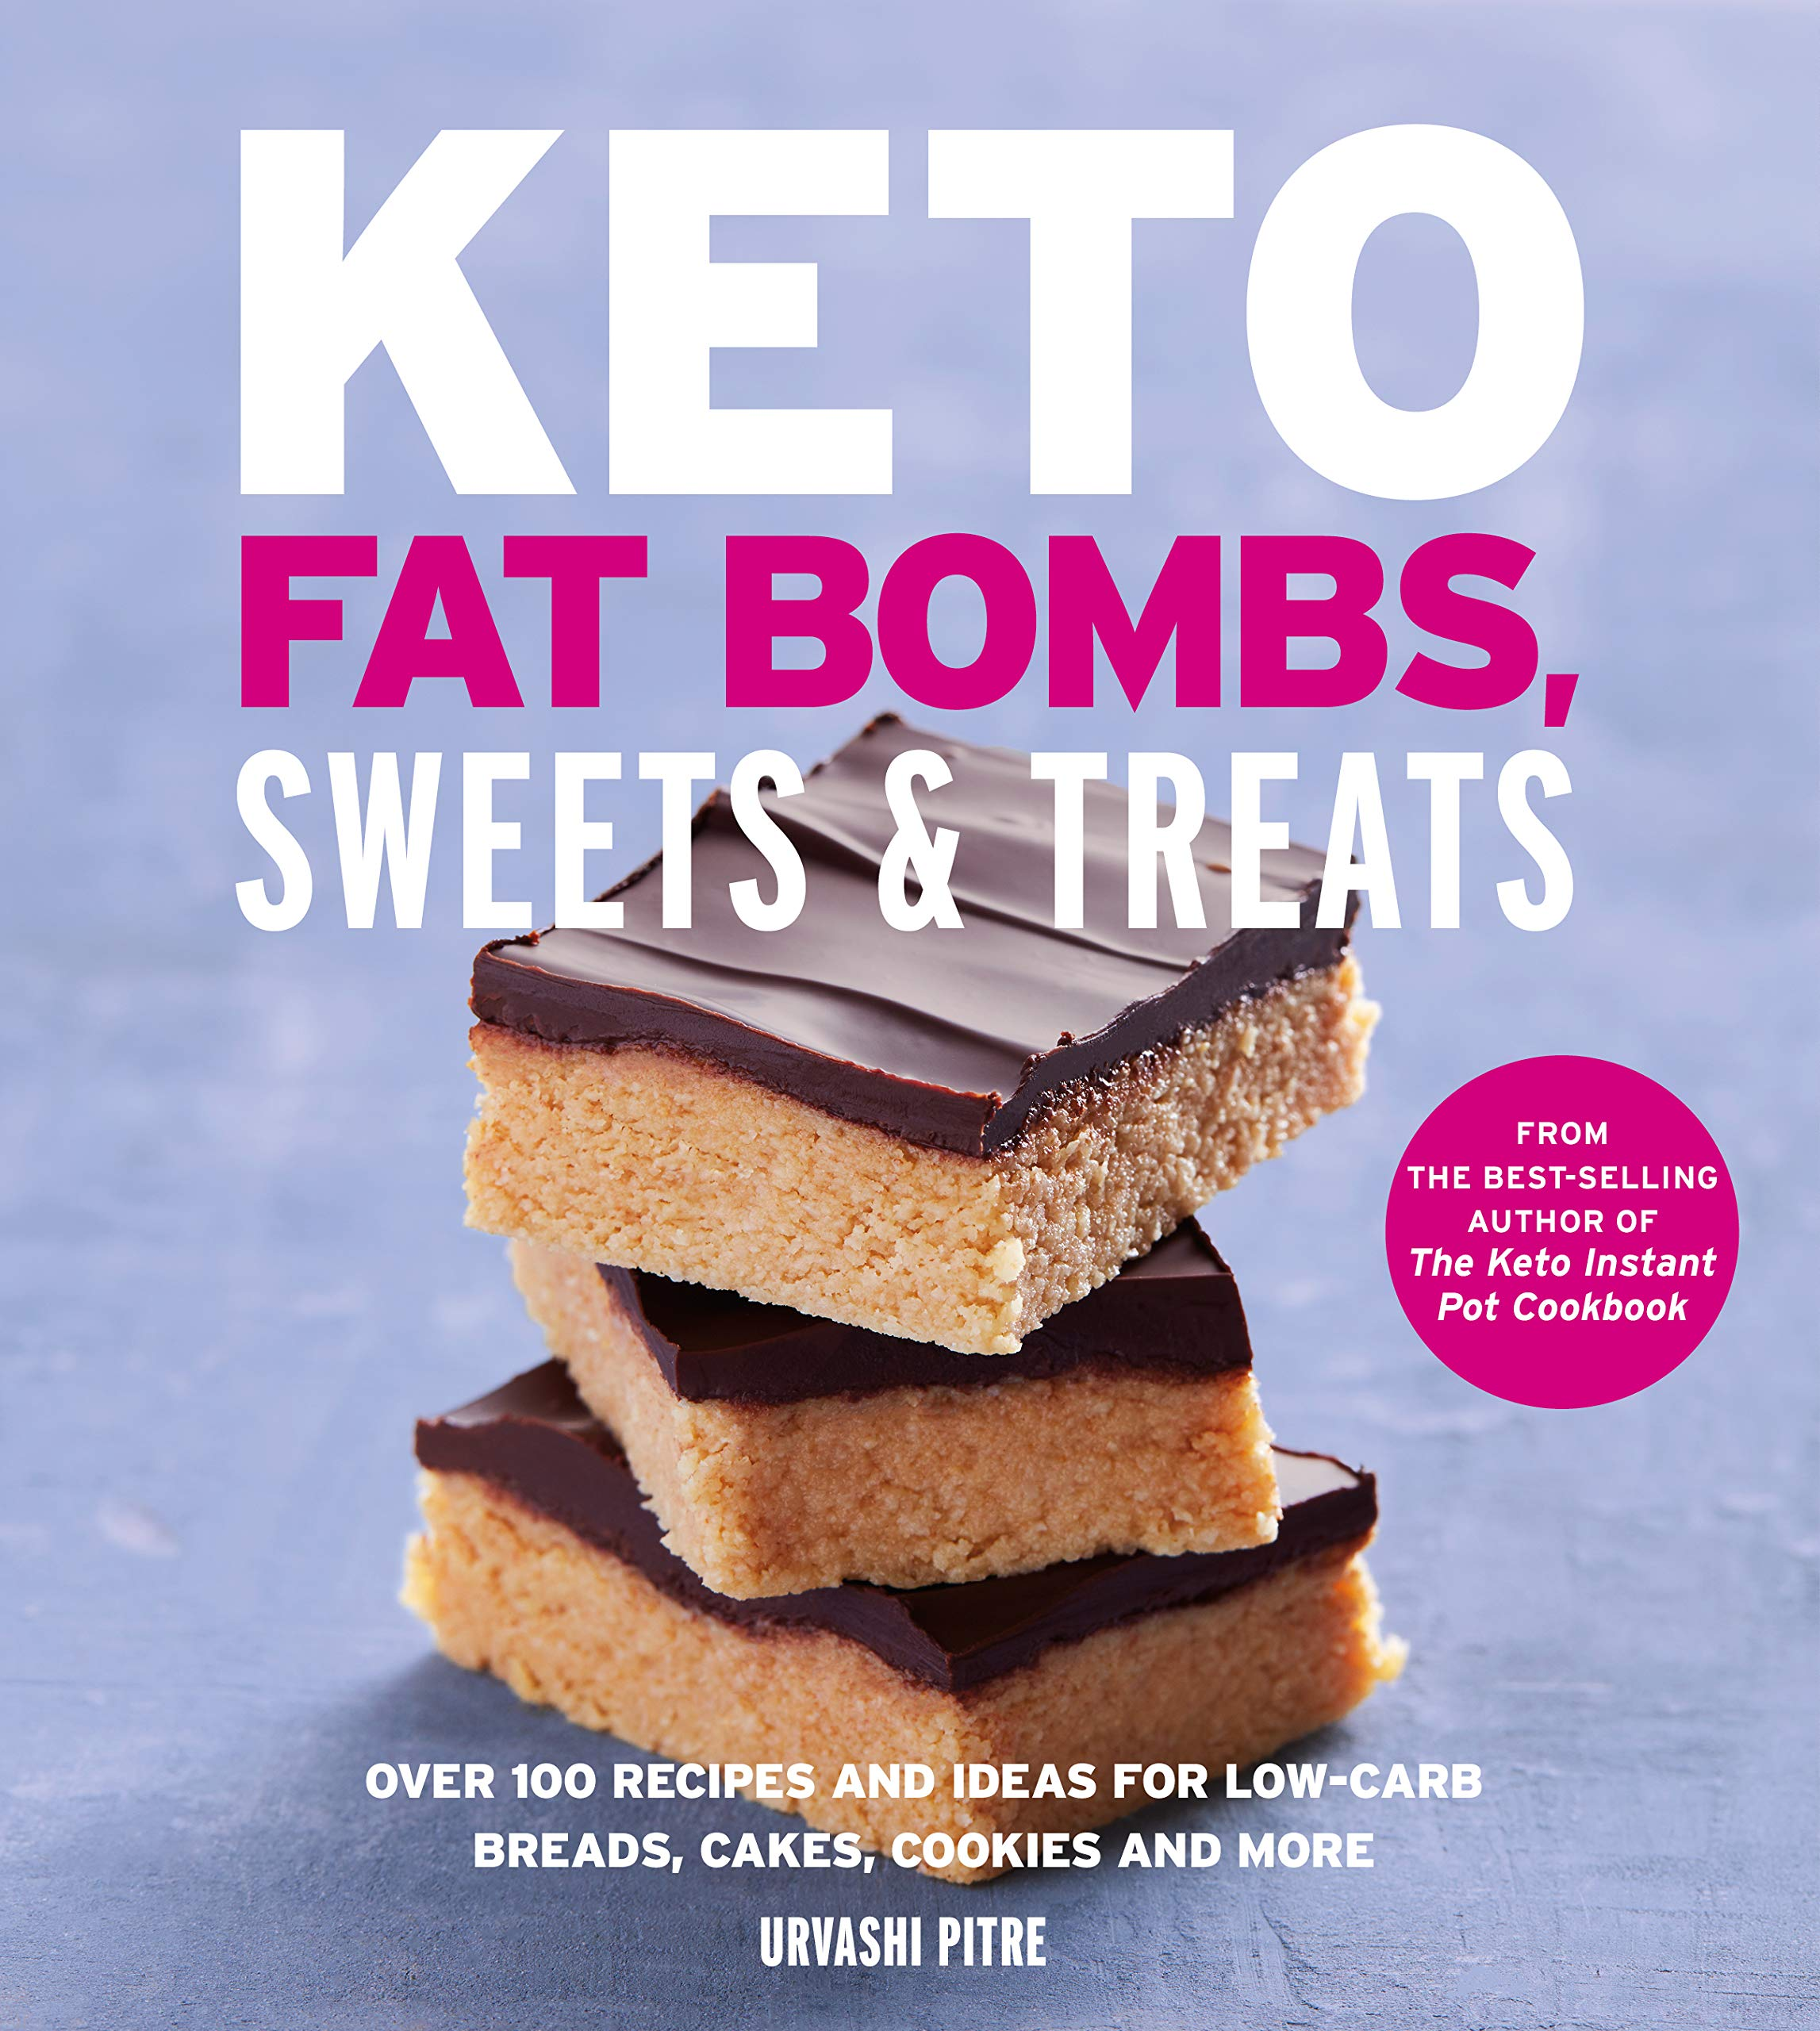 Keto Sweets Keto-Friendly Dessert Recipes Outlet Refurbished  Reviews